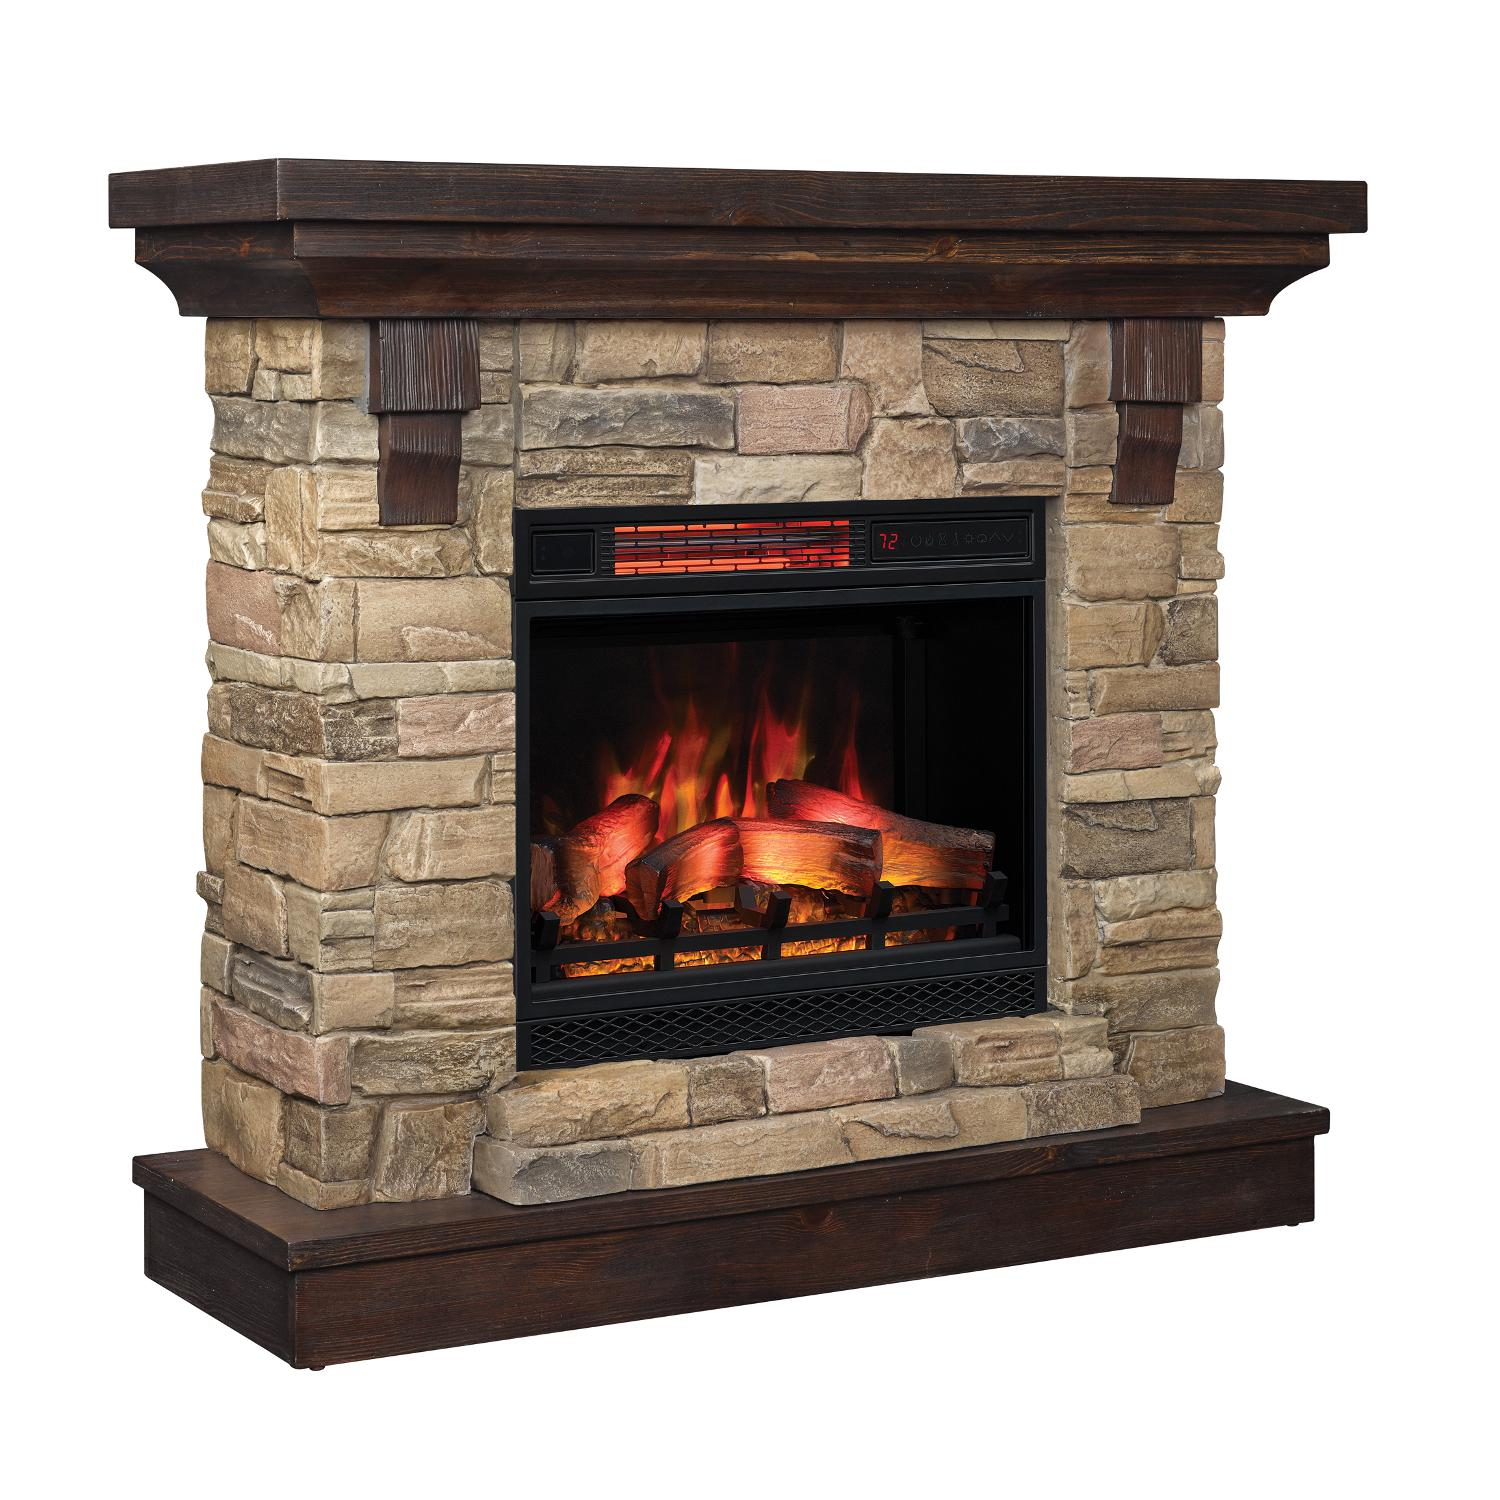 "Classicflame Eugene 45"" Quartz Infrared Electric Fireplace Mantel Package - 97364-iii"